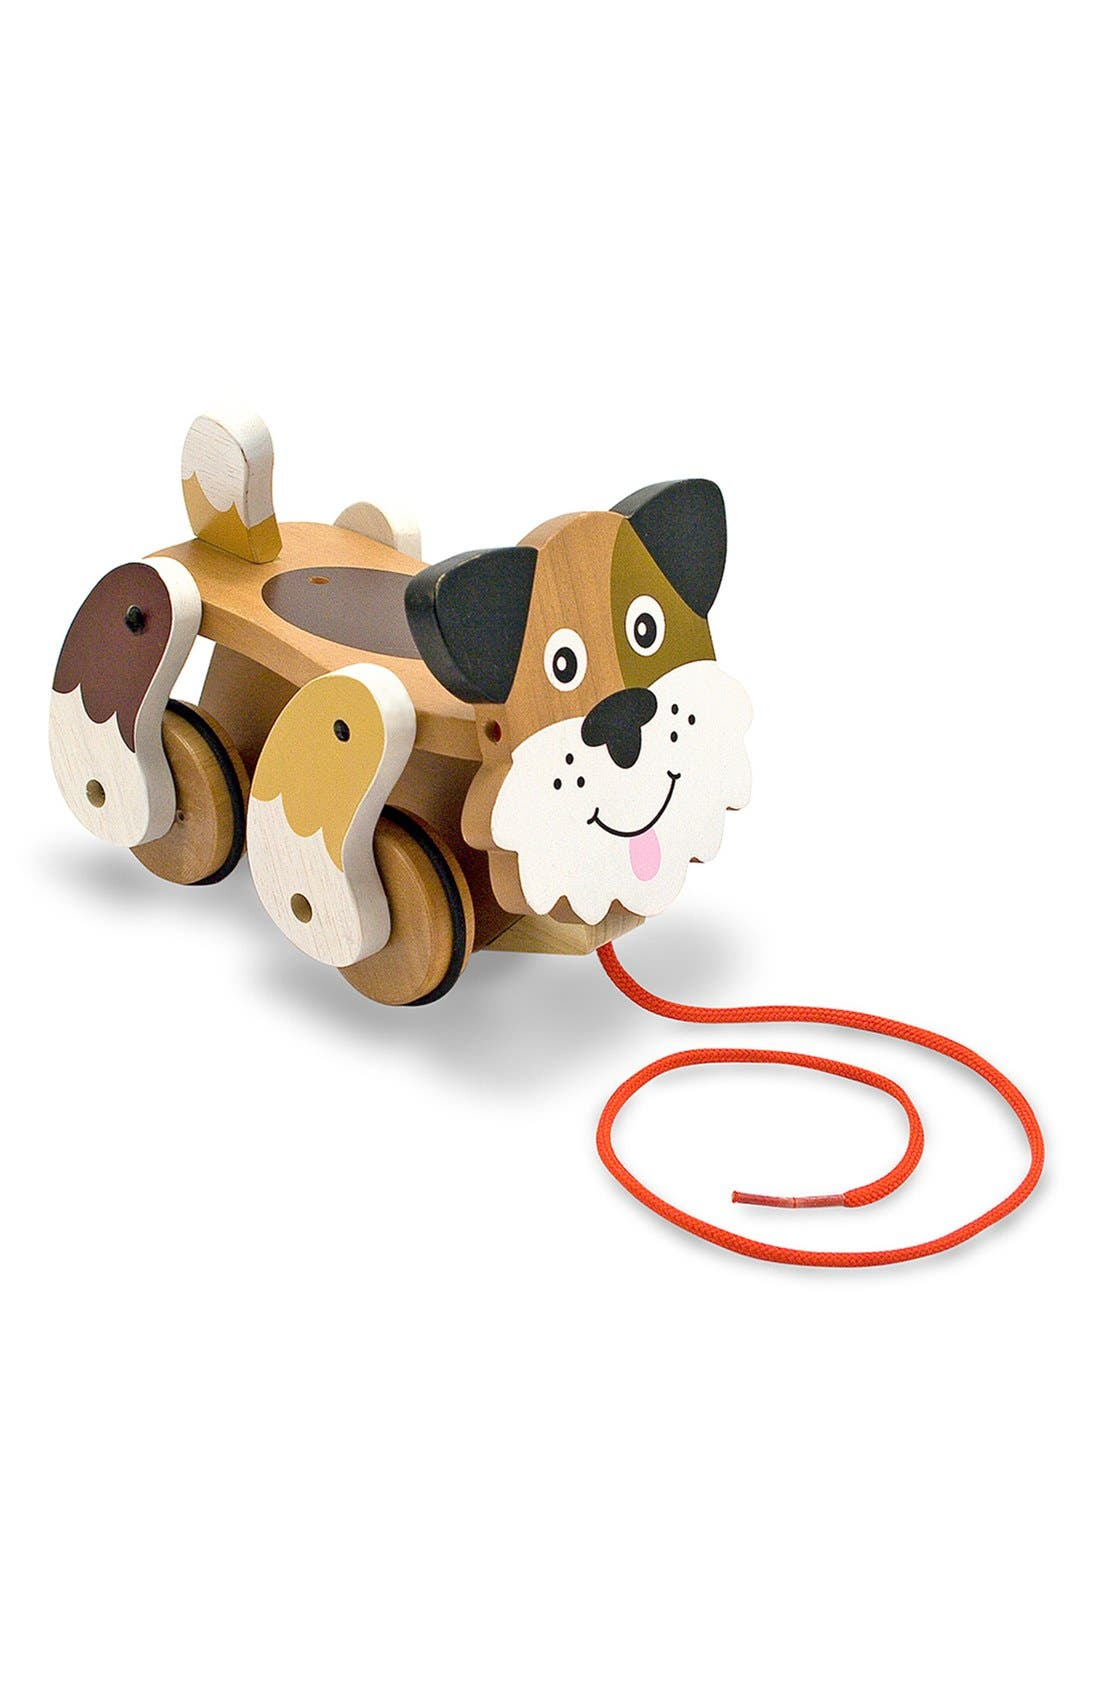 'Playful Puppy' Pull Toy,                         Main,                         color, Brown